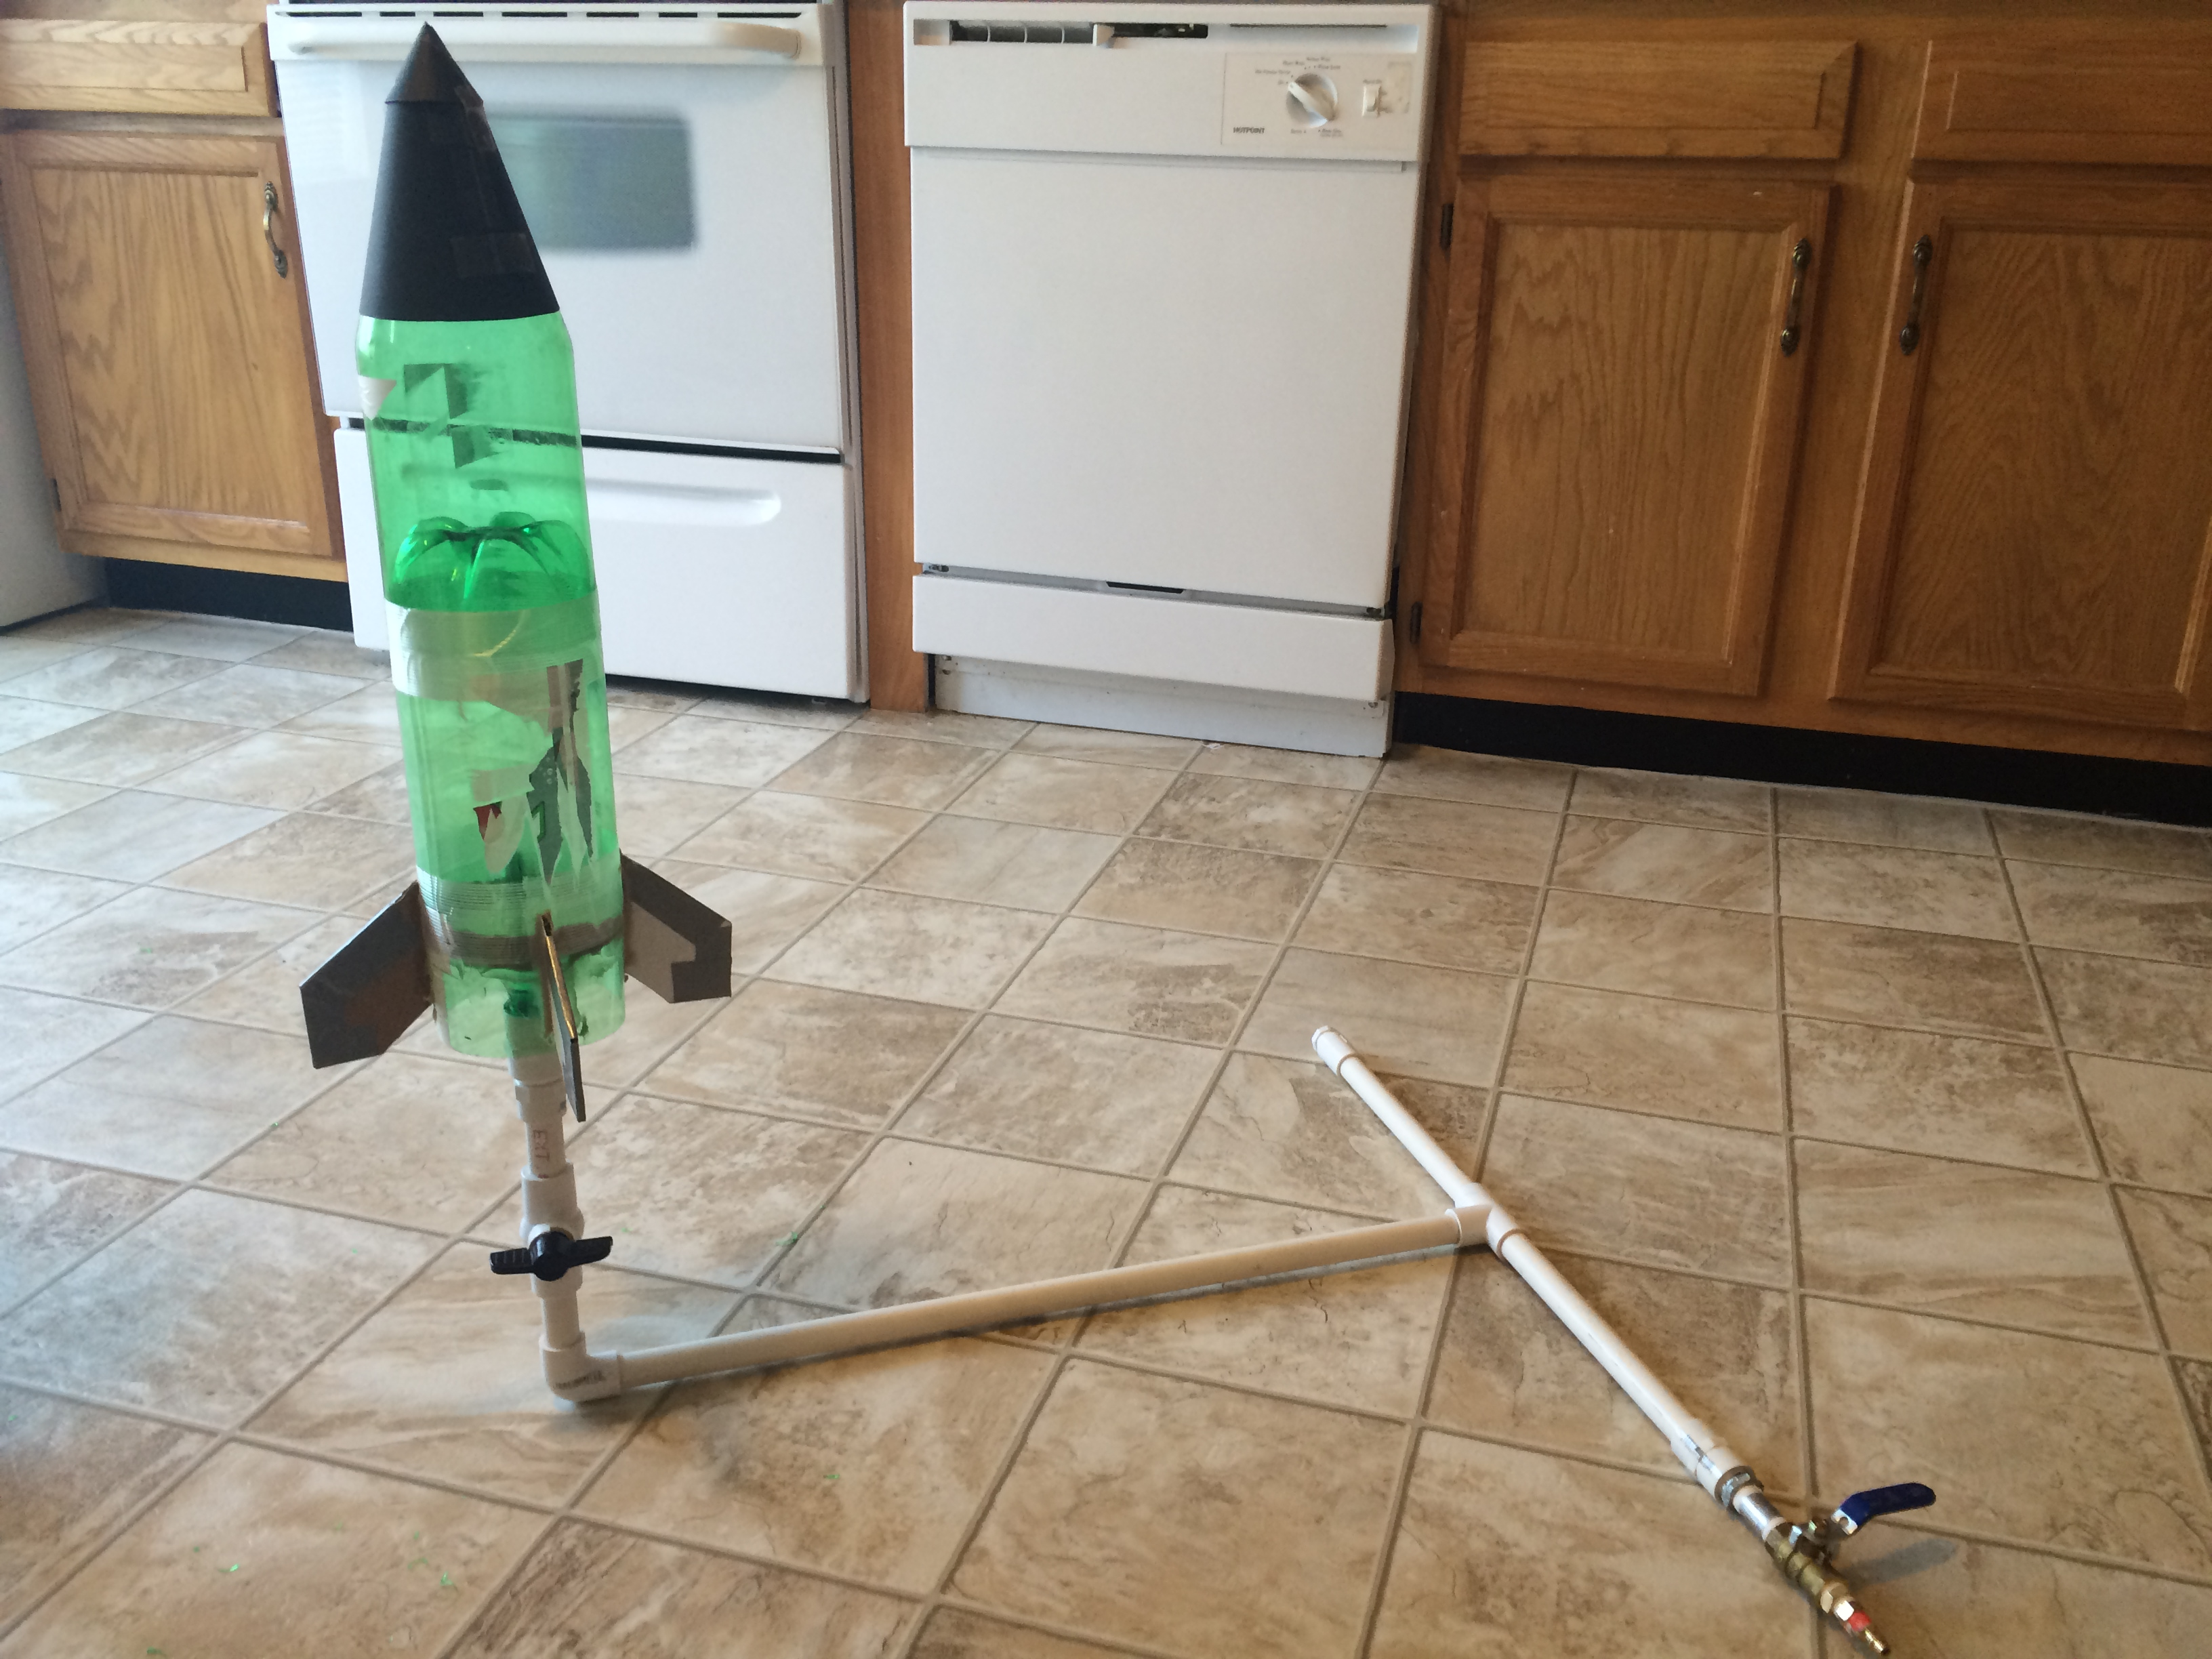 Picture of Launching the Rocket